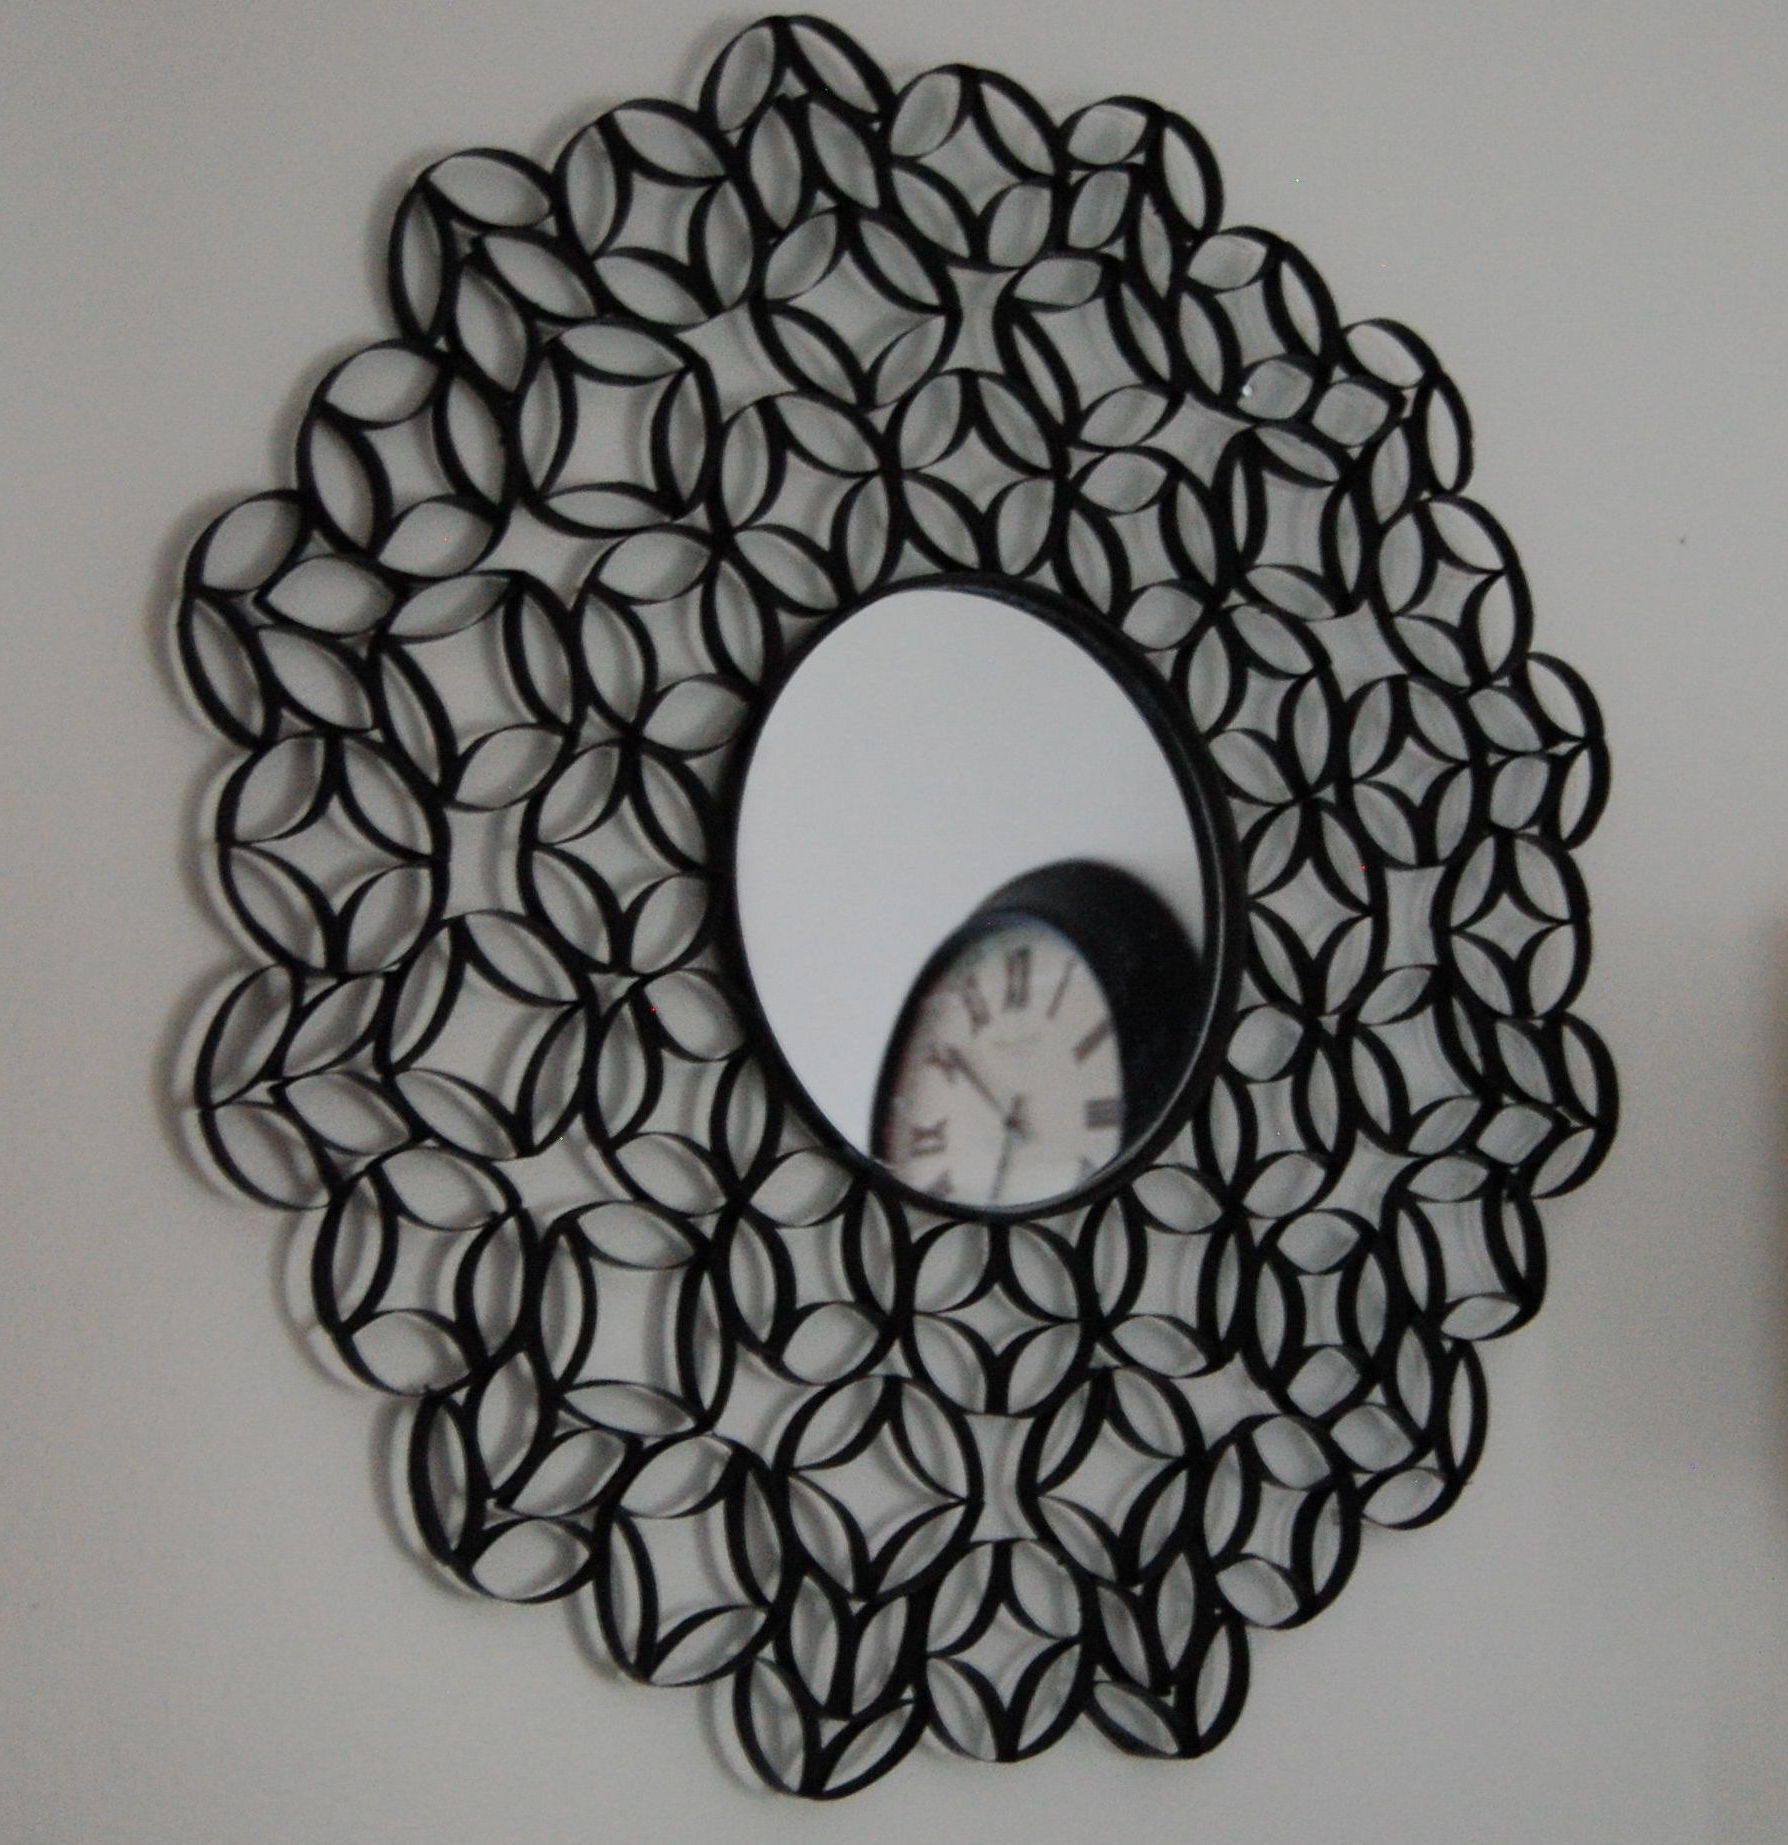 Toilet Paper Roll Wall Art Within Widely Used Toilet Paper Roll Wall Art Just Spray Paint And Voila! (View 12 of 15)